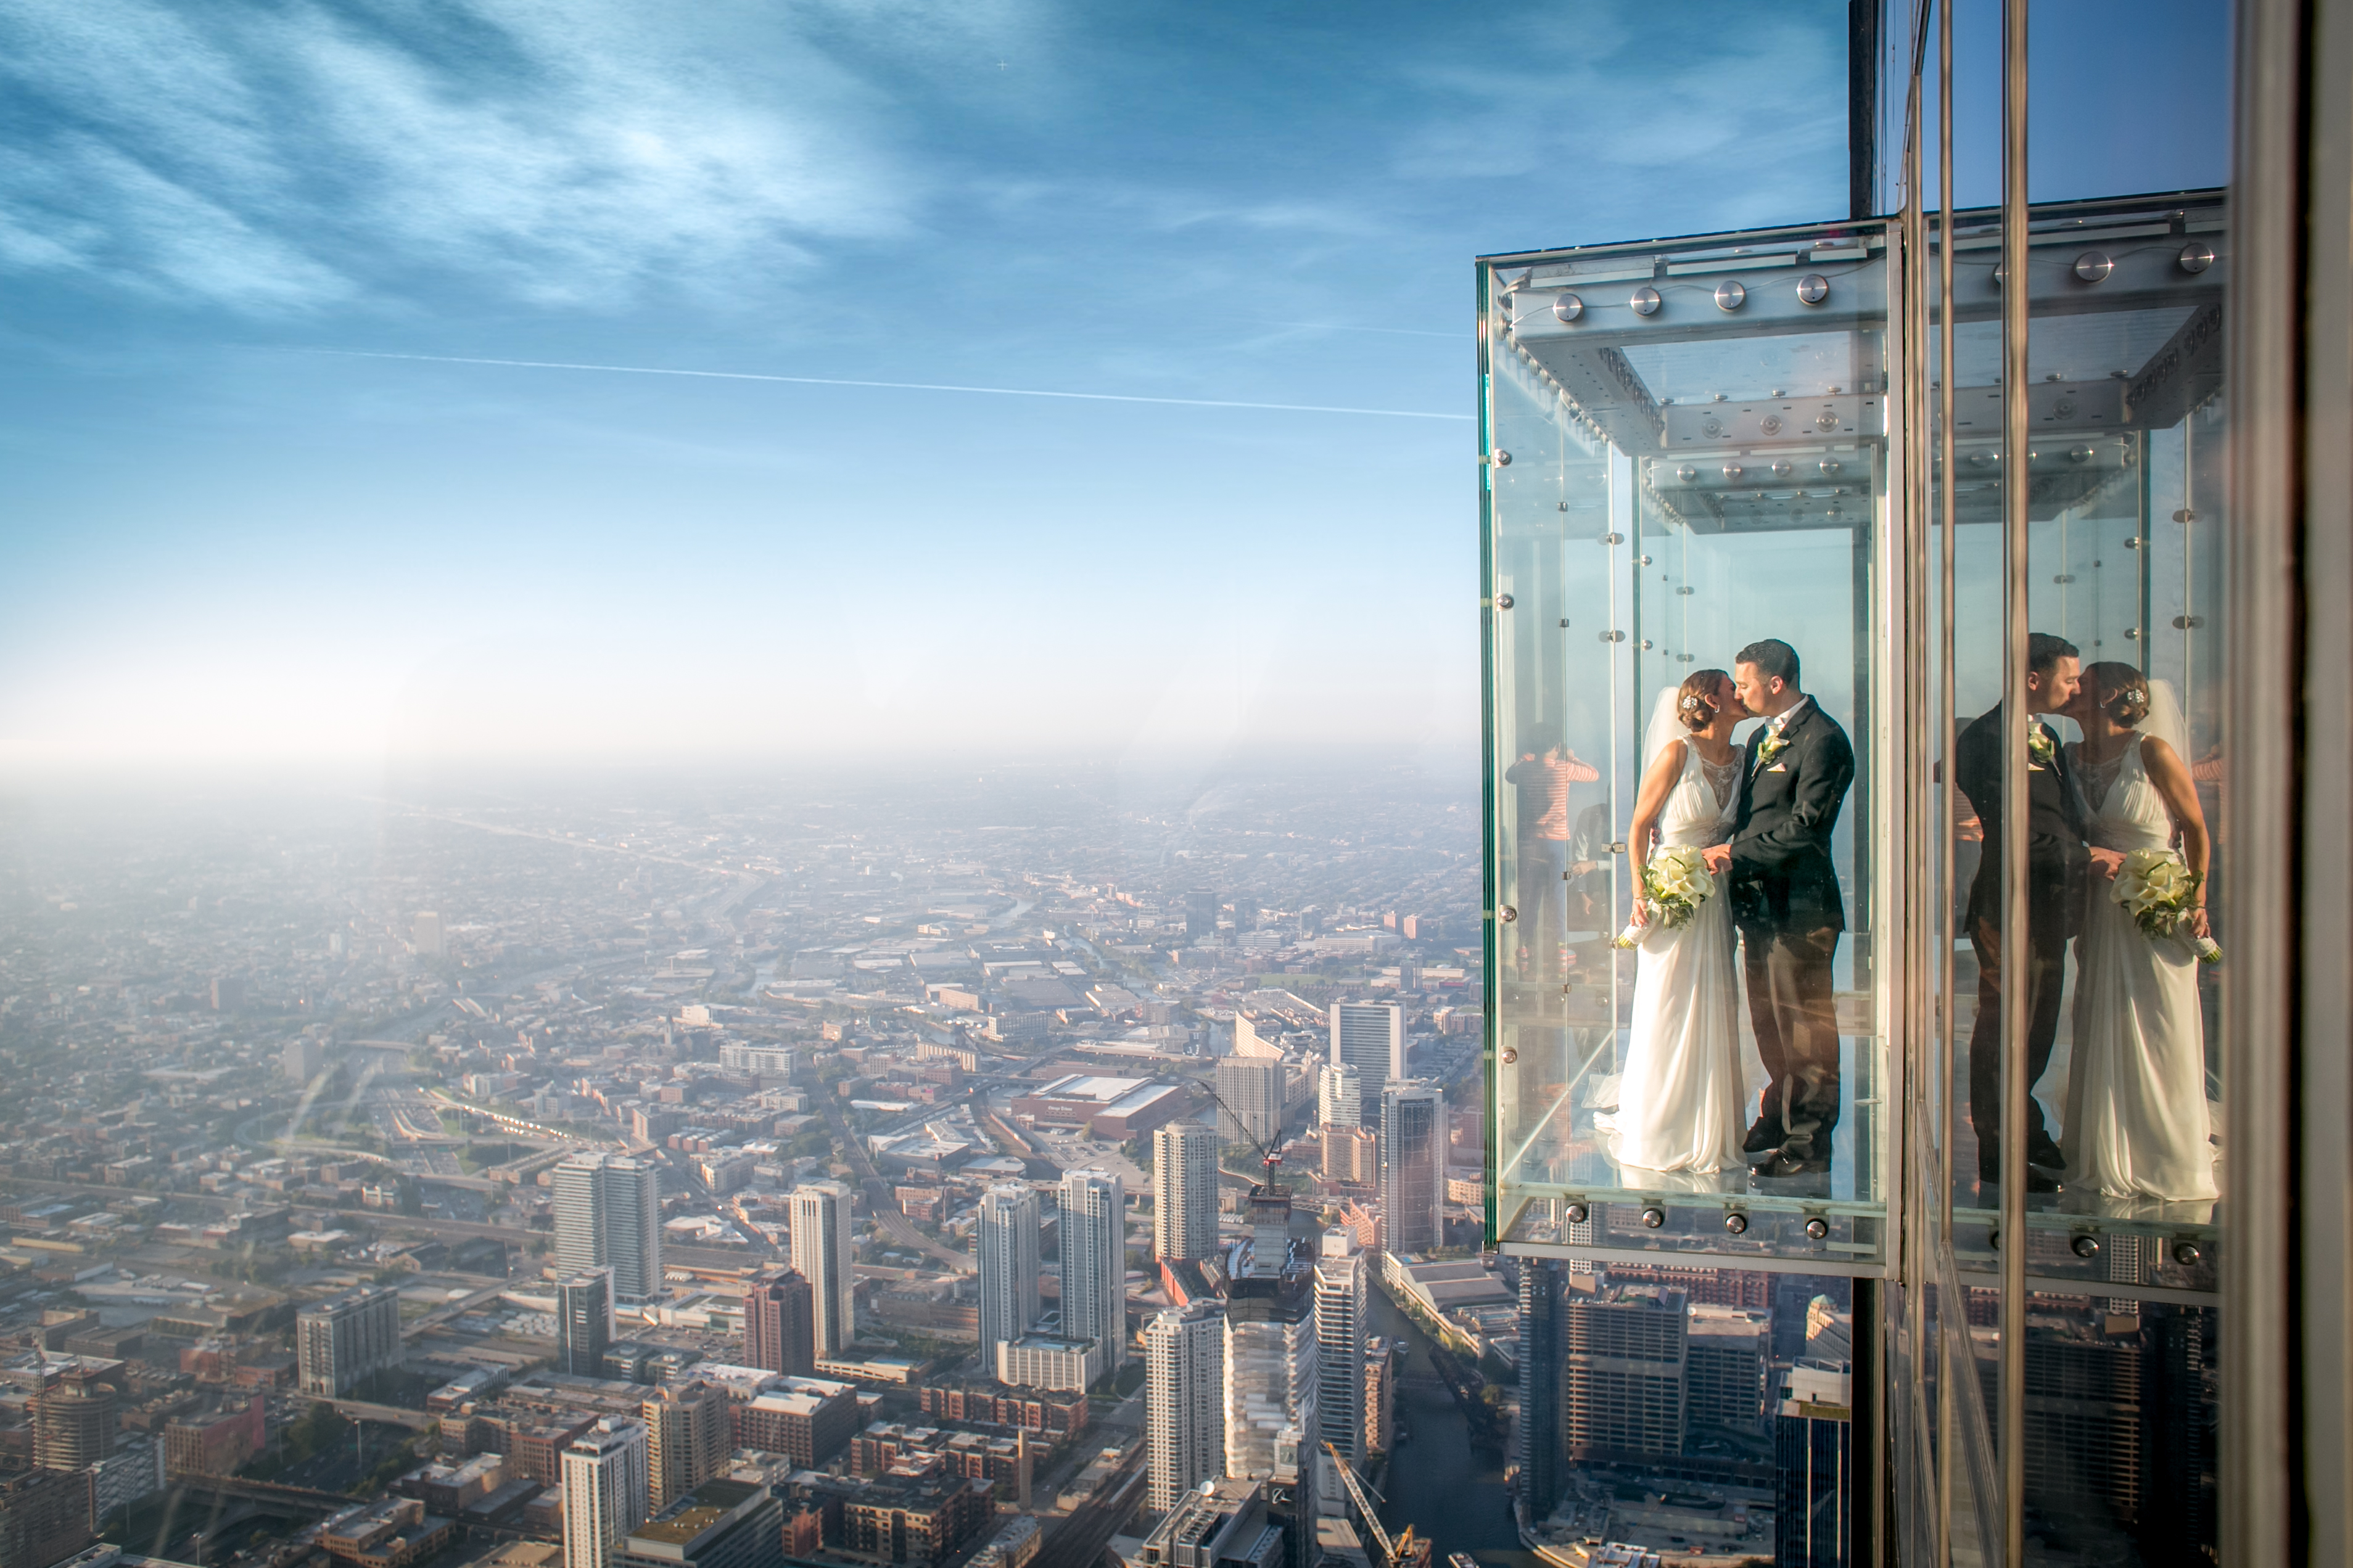 The Ledge - Willis Tower Skydeck